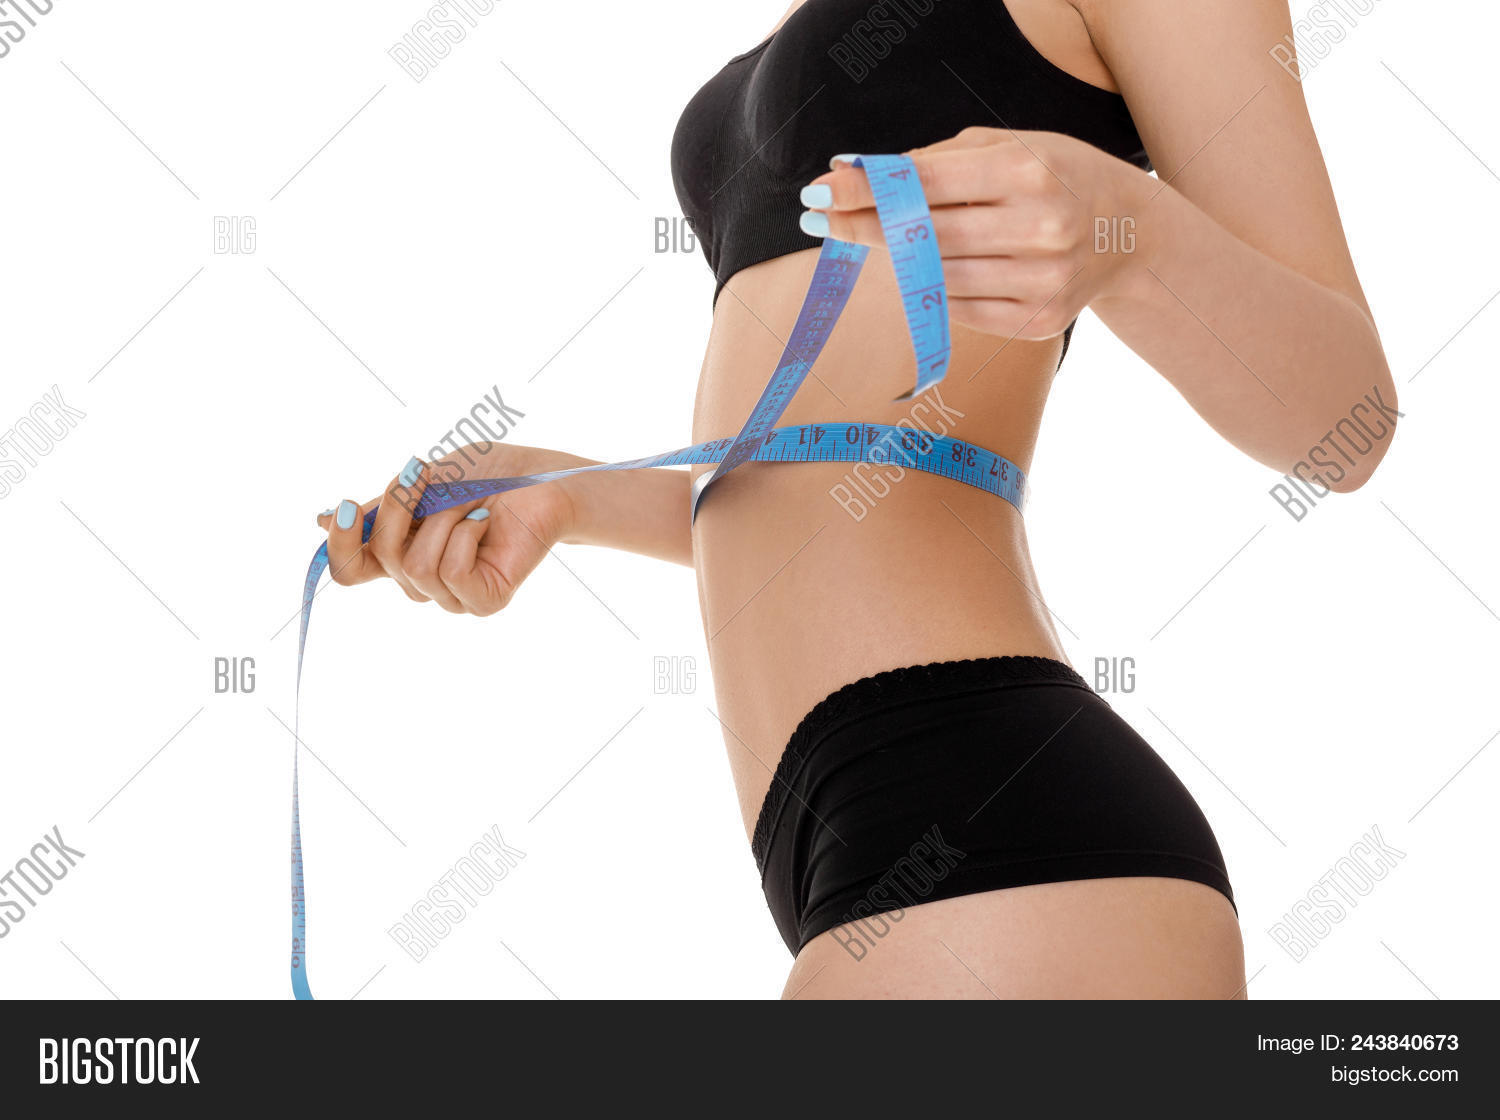 9510a1c1c2061 Woman Measuring Her Perfect Waist With Blue Measuring Tape. Slim Body On  White Background